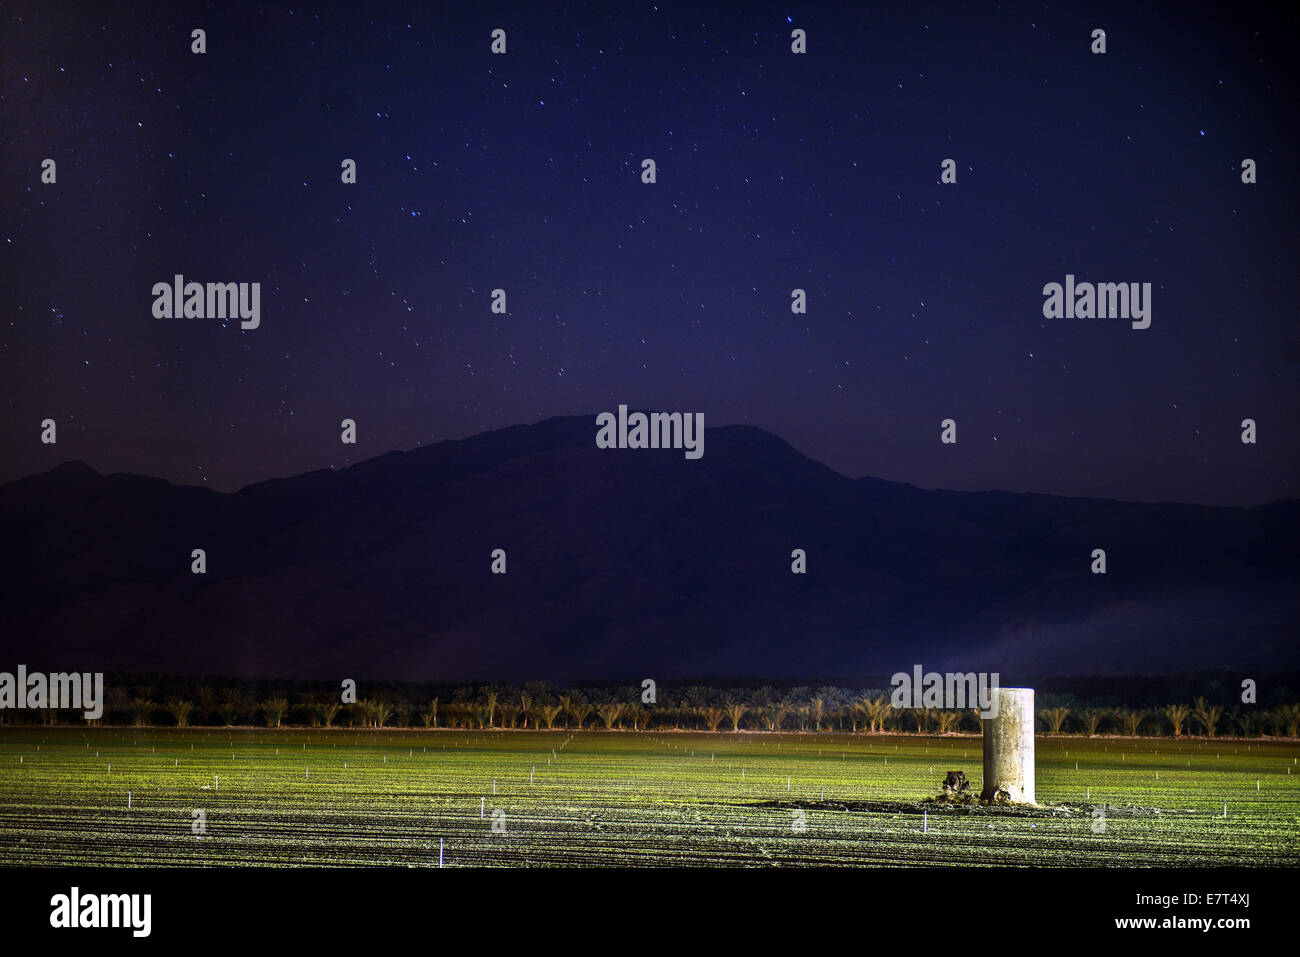 Oct. 7, 2013 - Newly planted field being irrigated at night, Vista Santa Rosa, Unincorporated Riverside County. - Stock Image